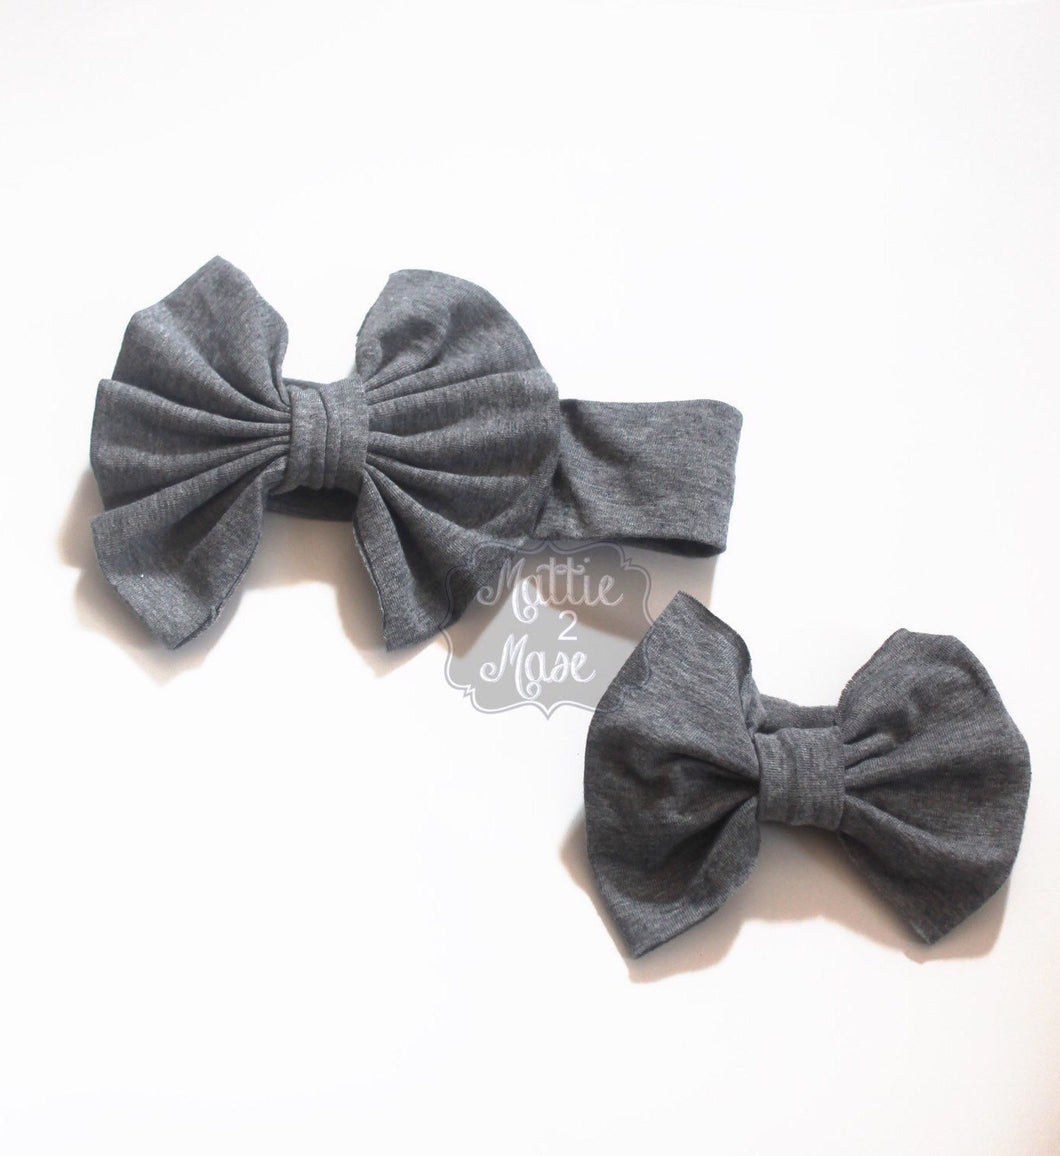 Messy Bow Headbands - Mattie and Mase